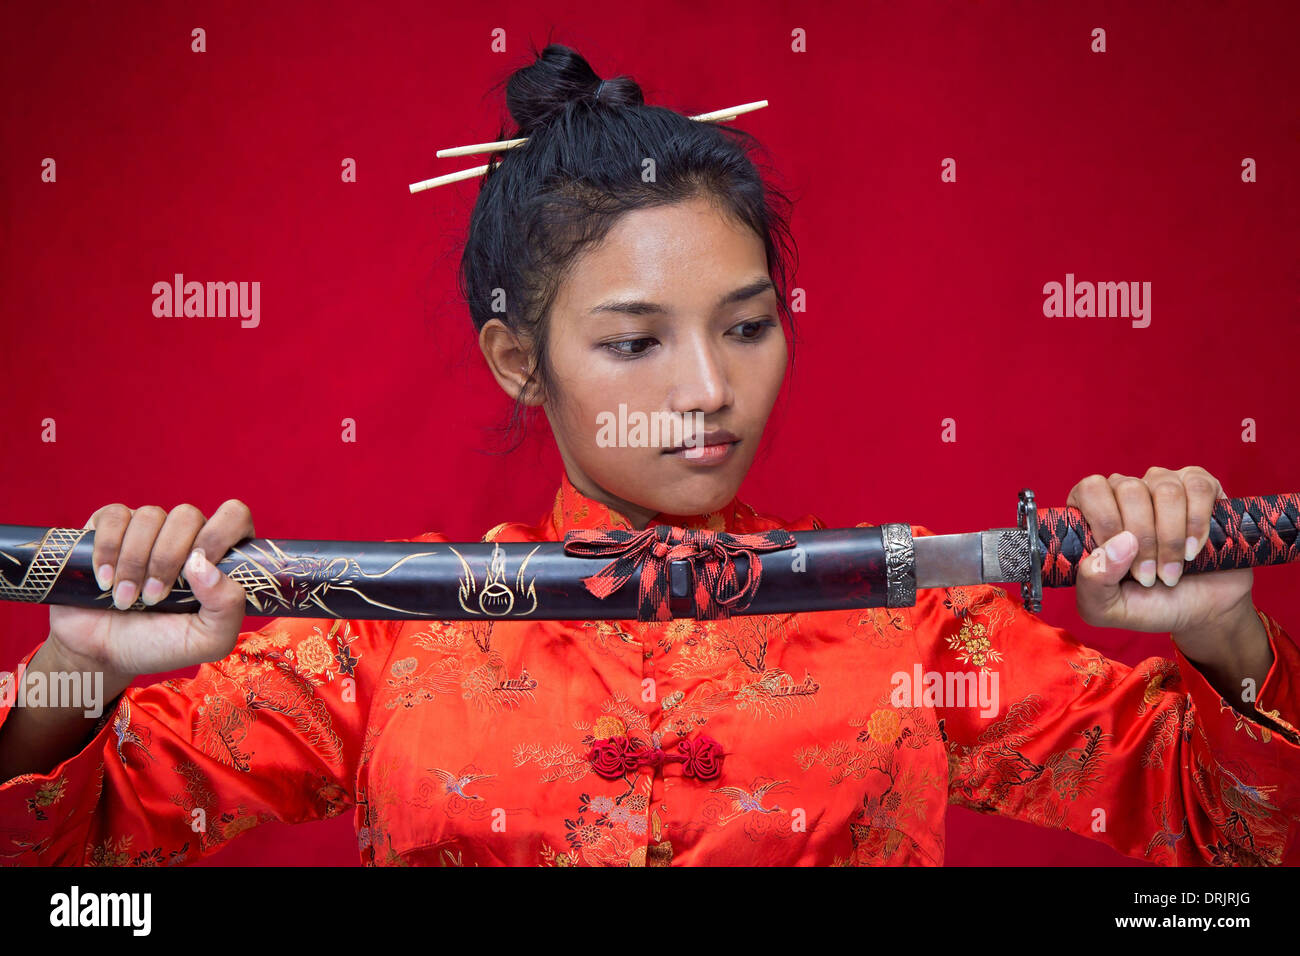 Asian woman holding a sword Photo Stock